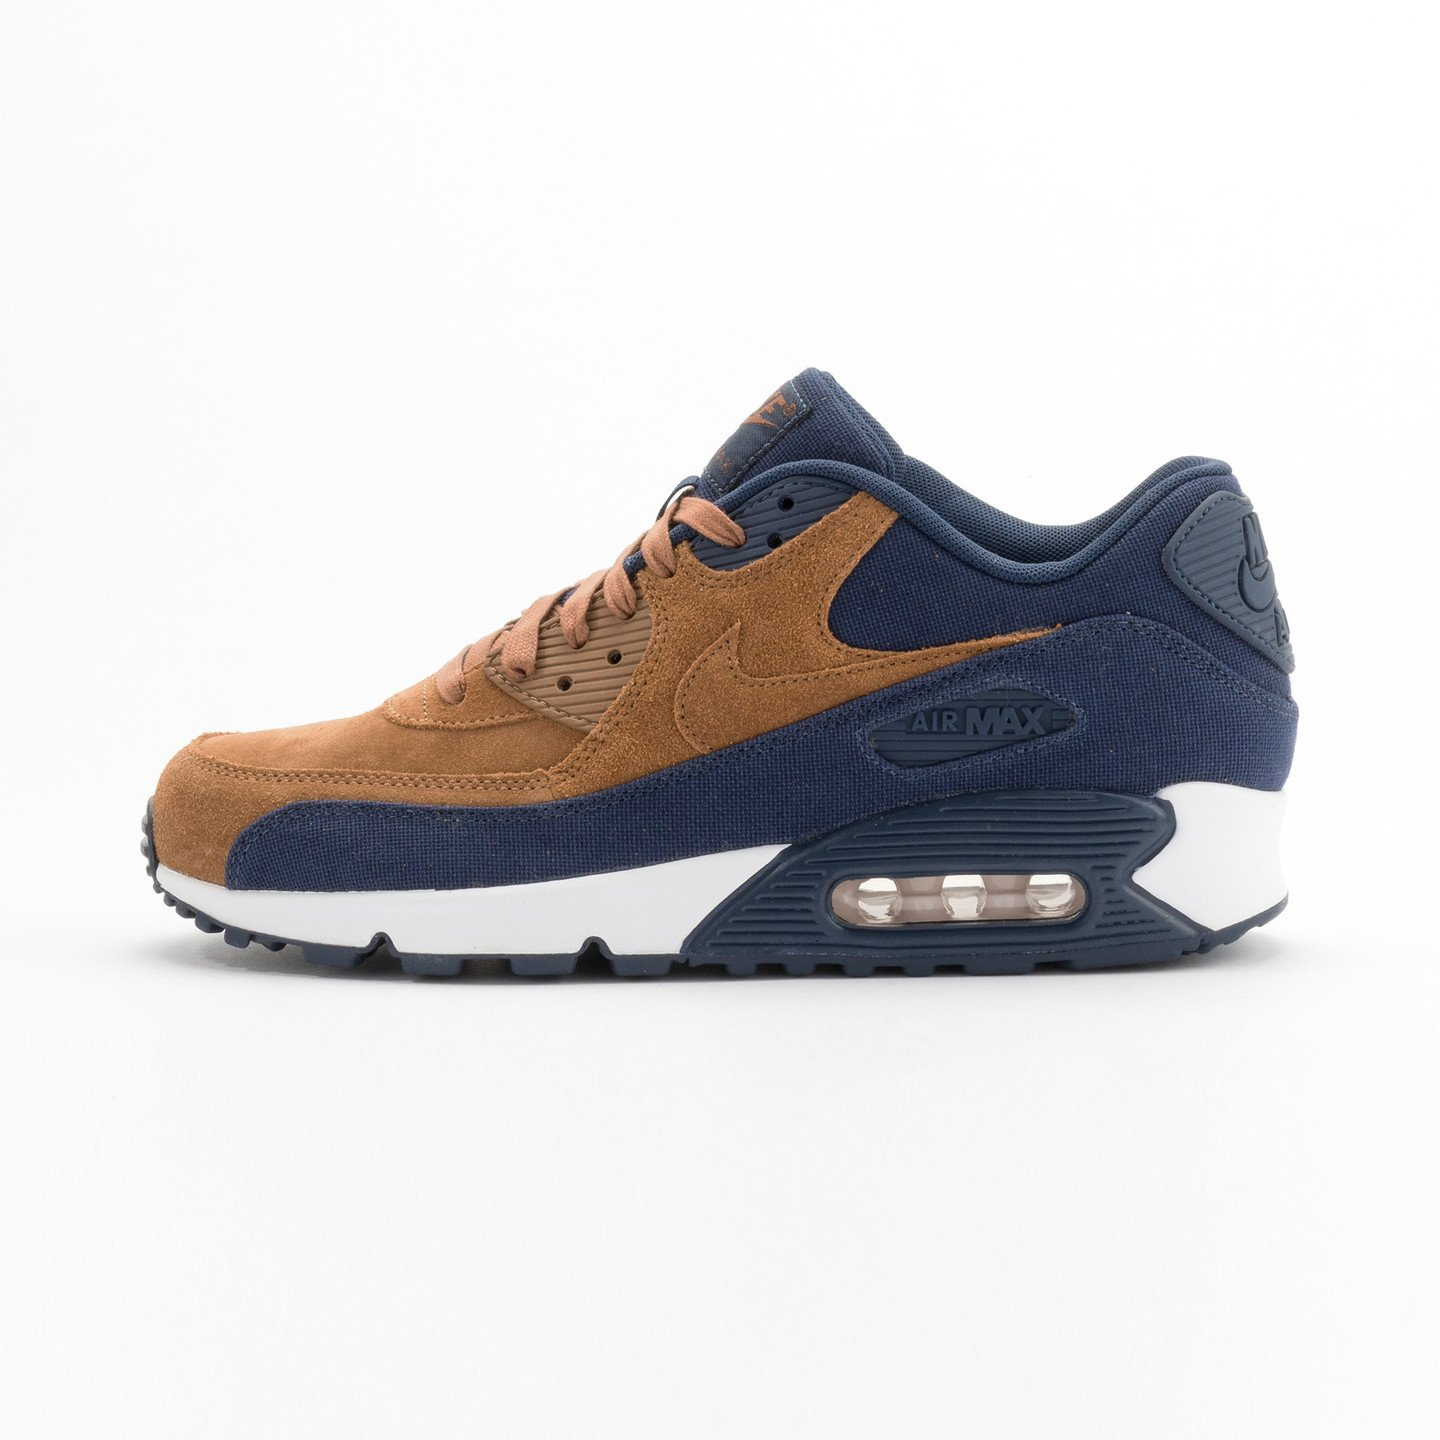 Nike Air Max 90 Premium Ale Brown / Midnight Navy 700155-201-44